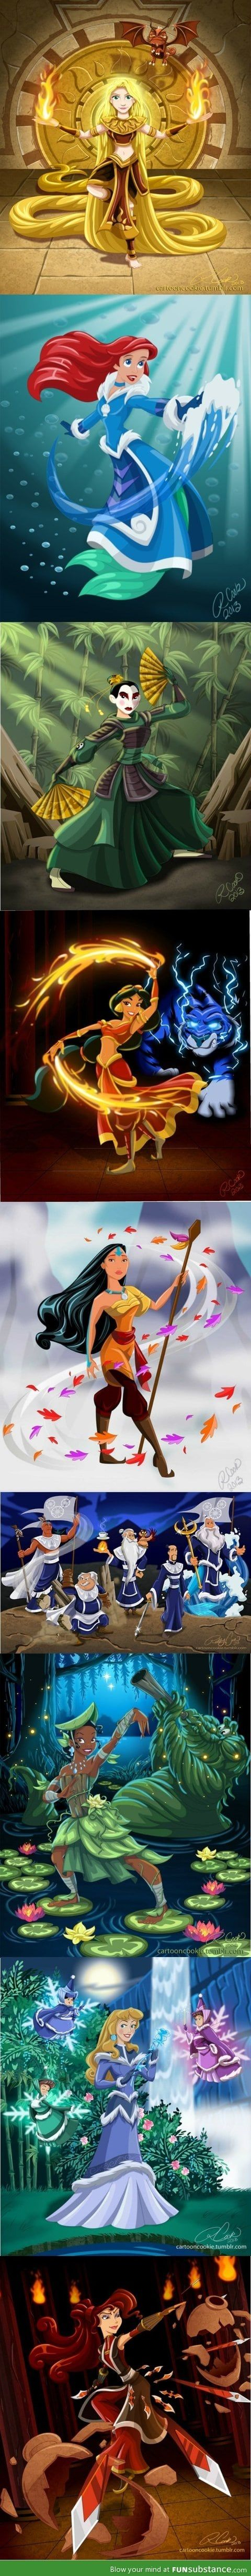 Disney vs AVATAR